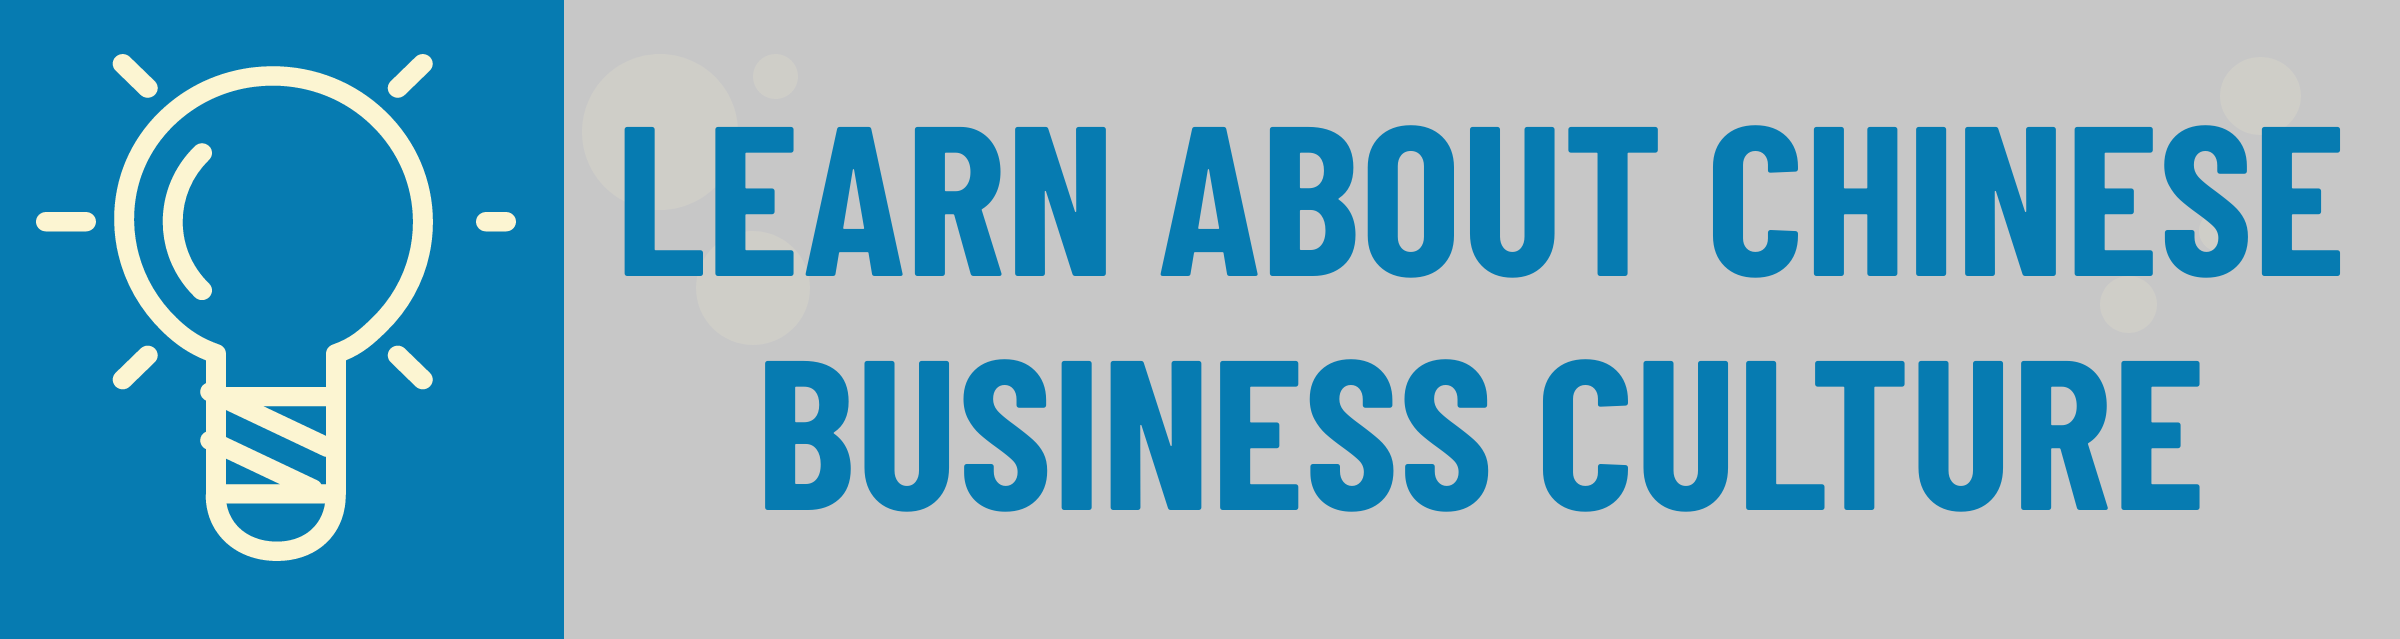 Banner: Learn About Chinese Business Culture